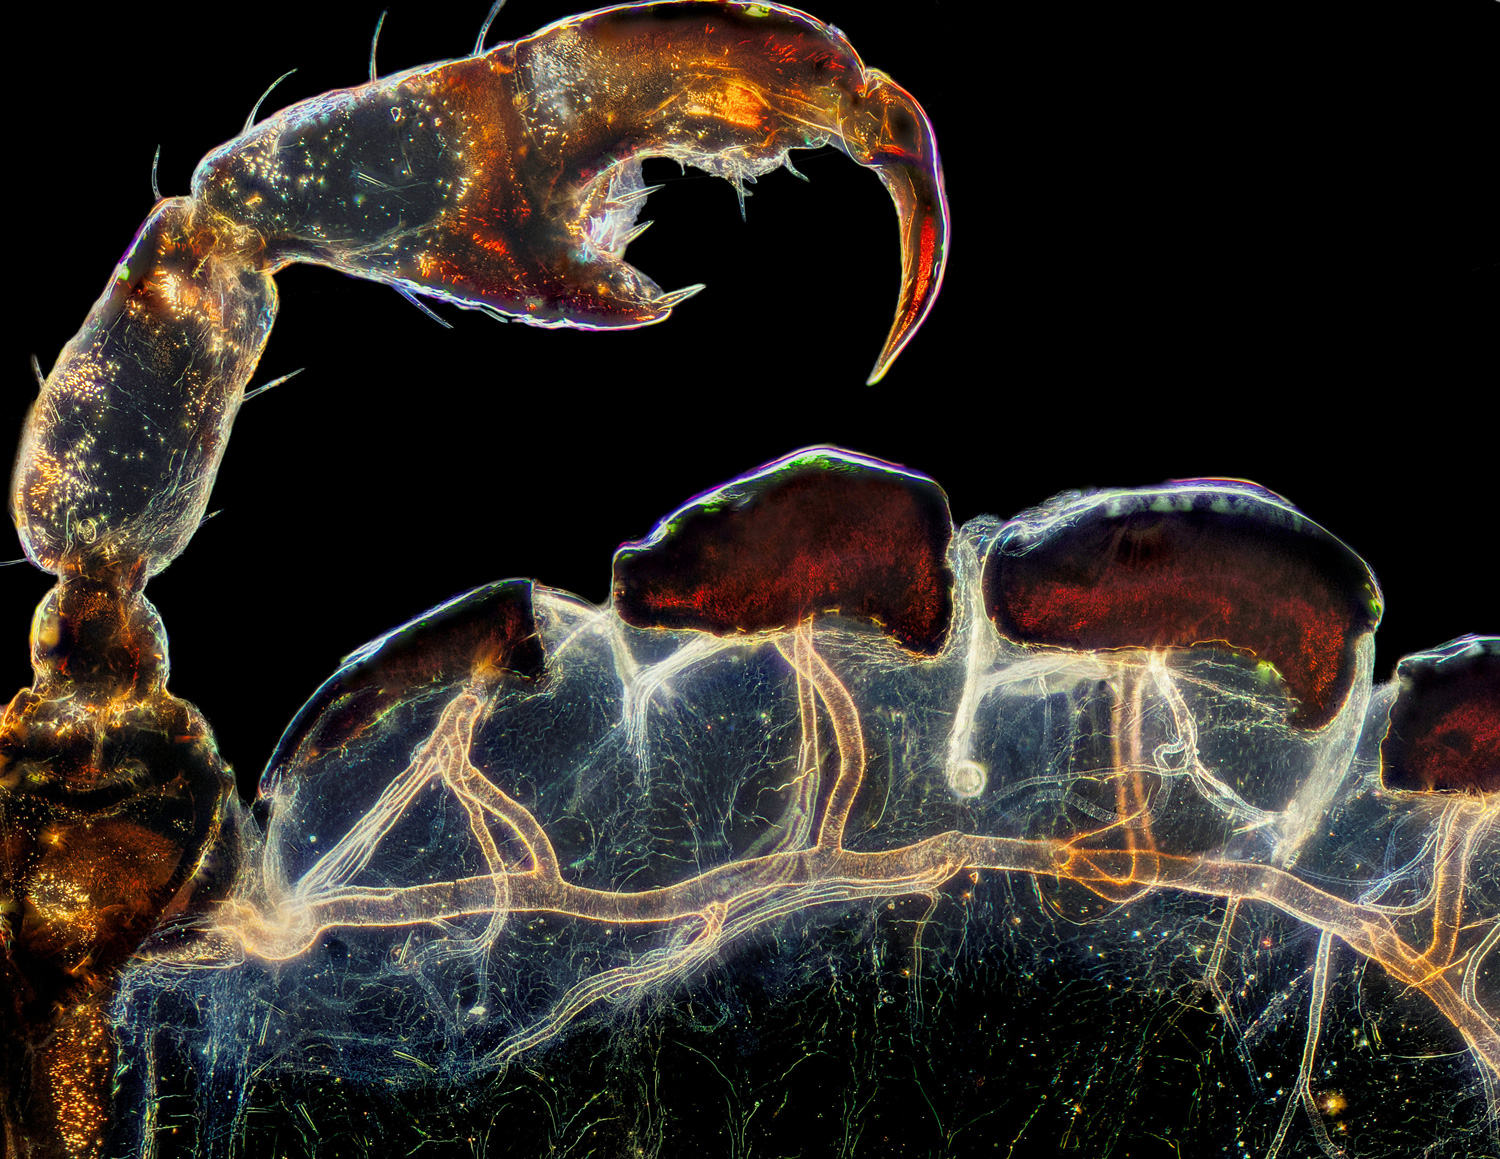 a microscopic close-up of a hog louse's claw